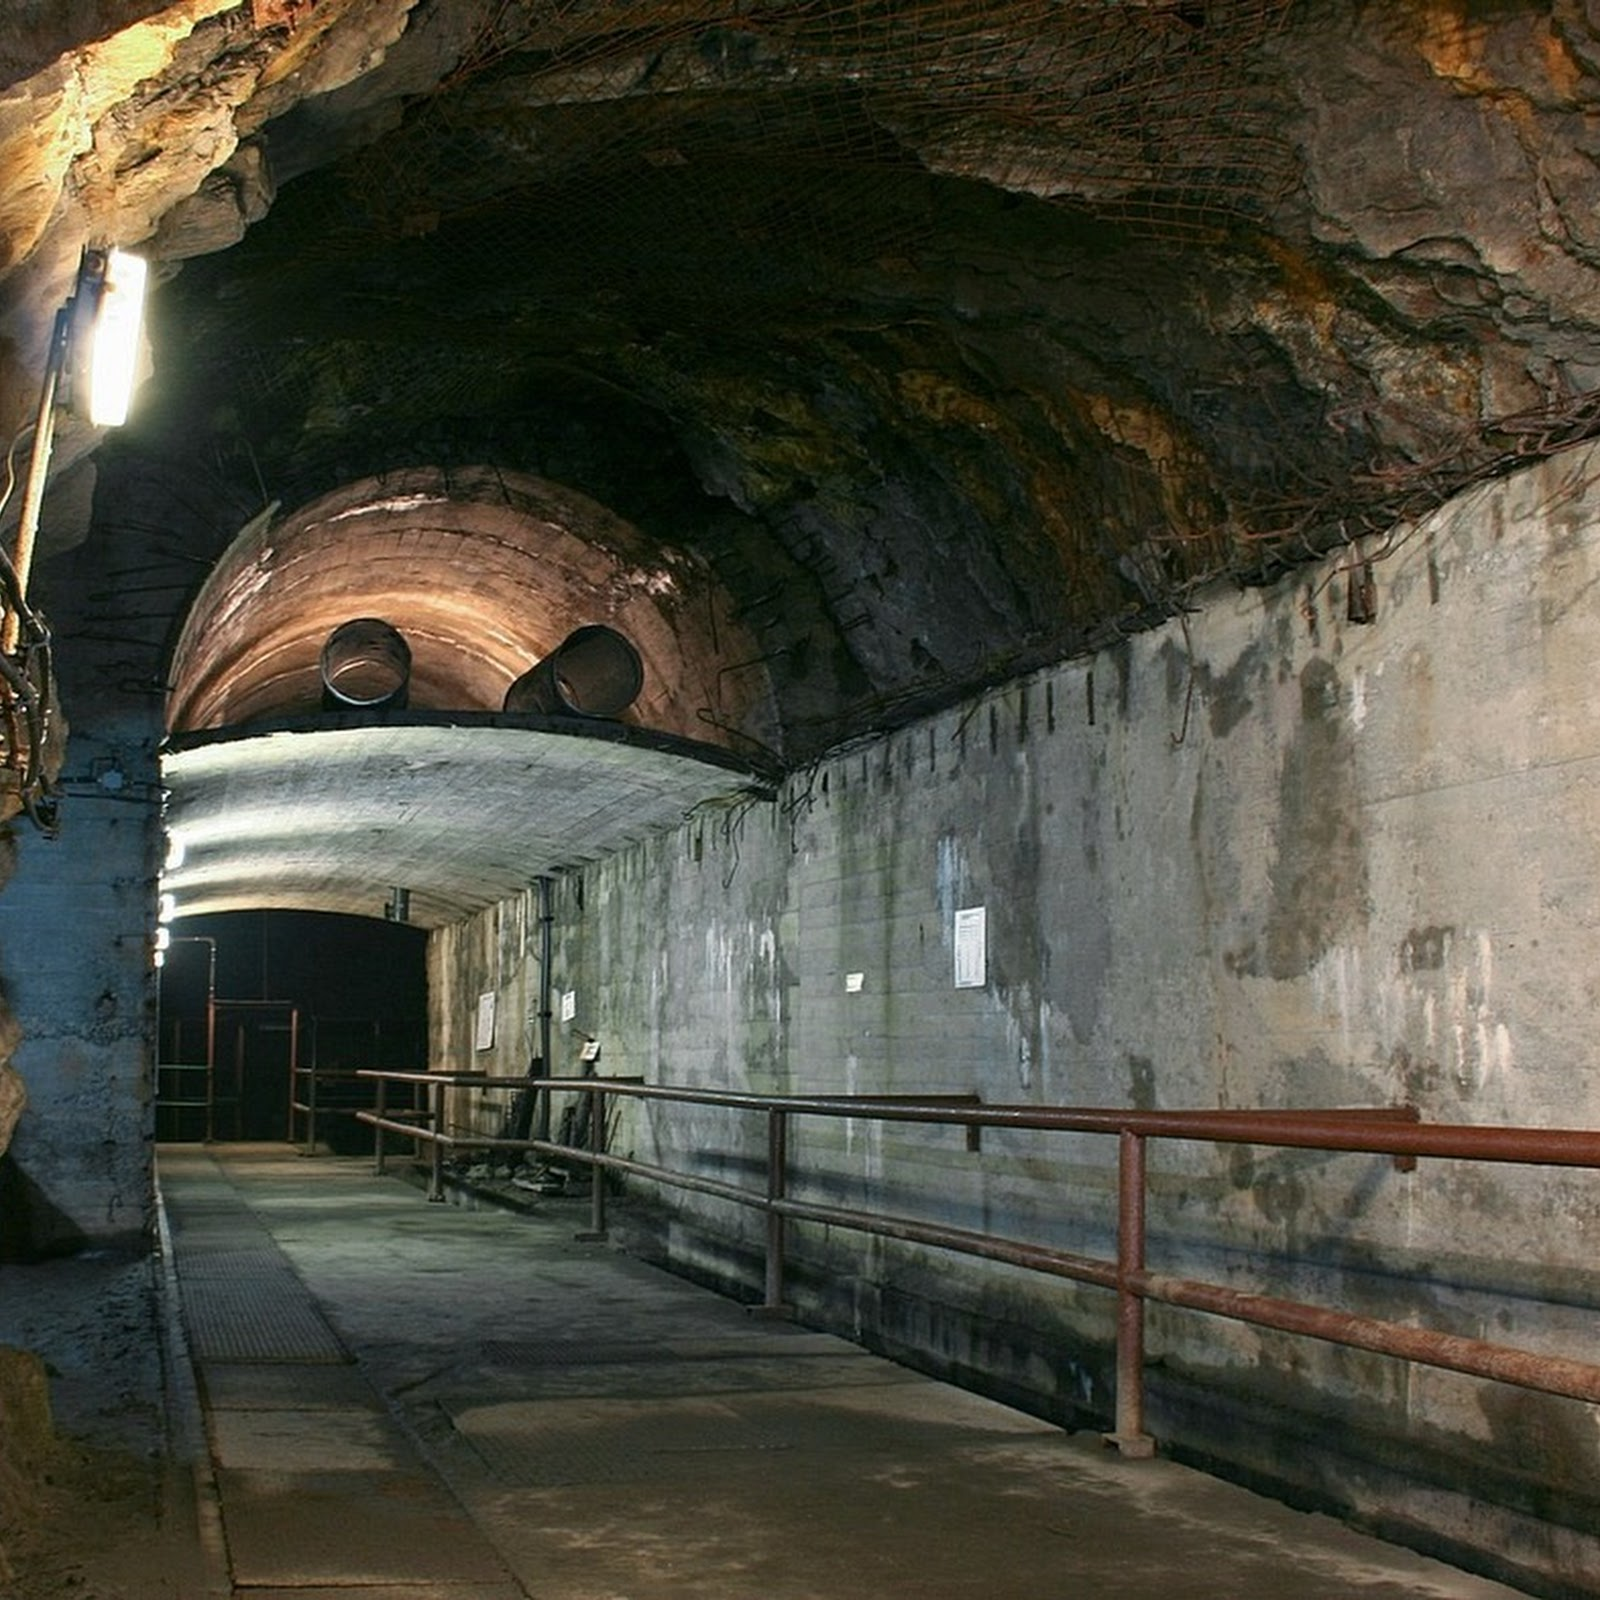 Project Riese: The Secret Nazi Tunnels in Poland